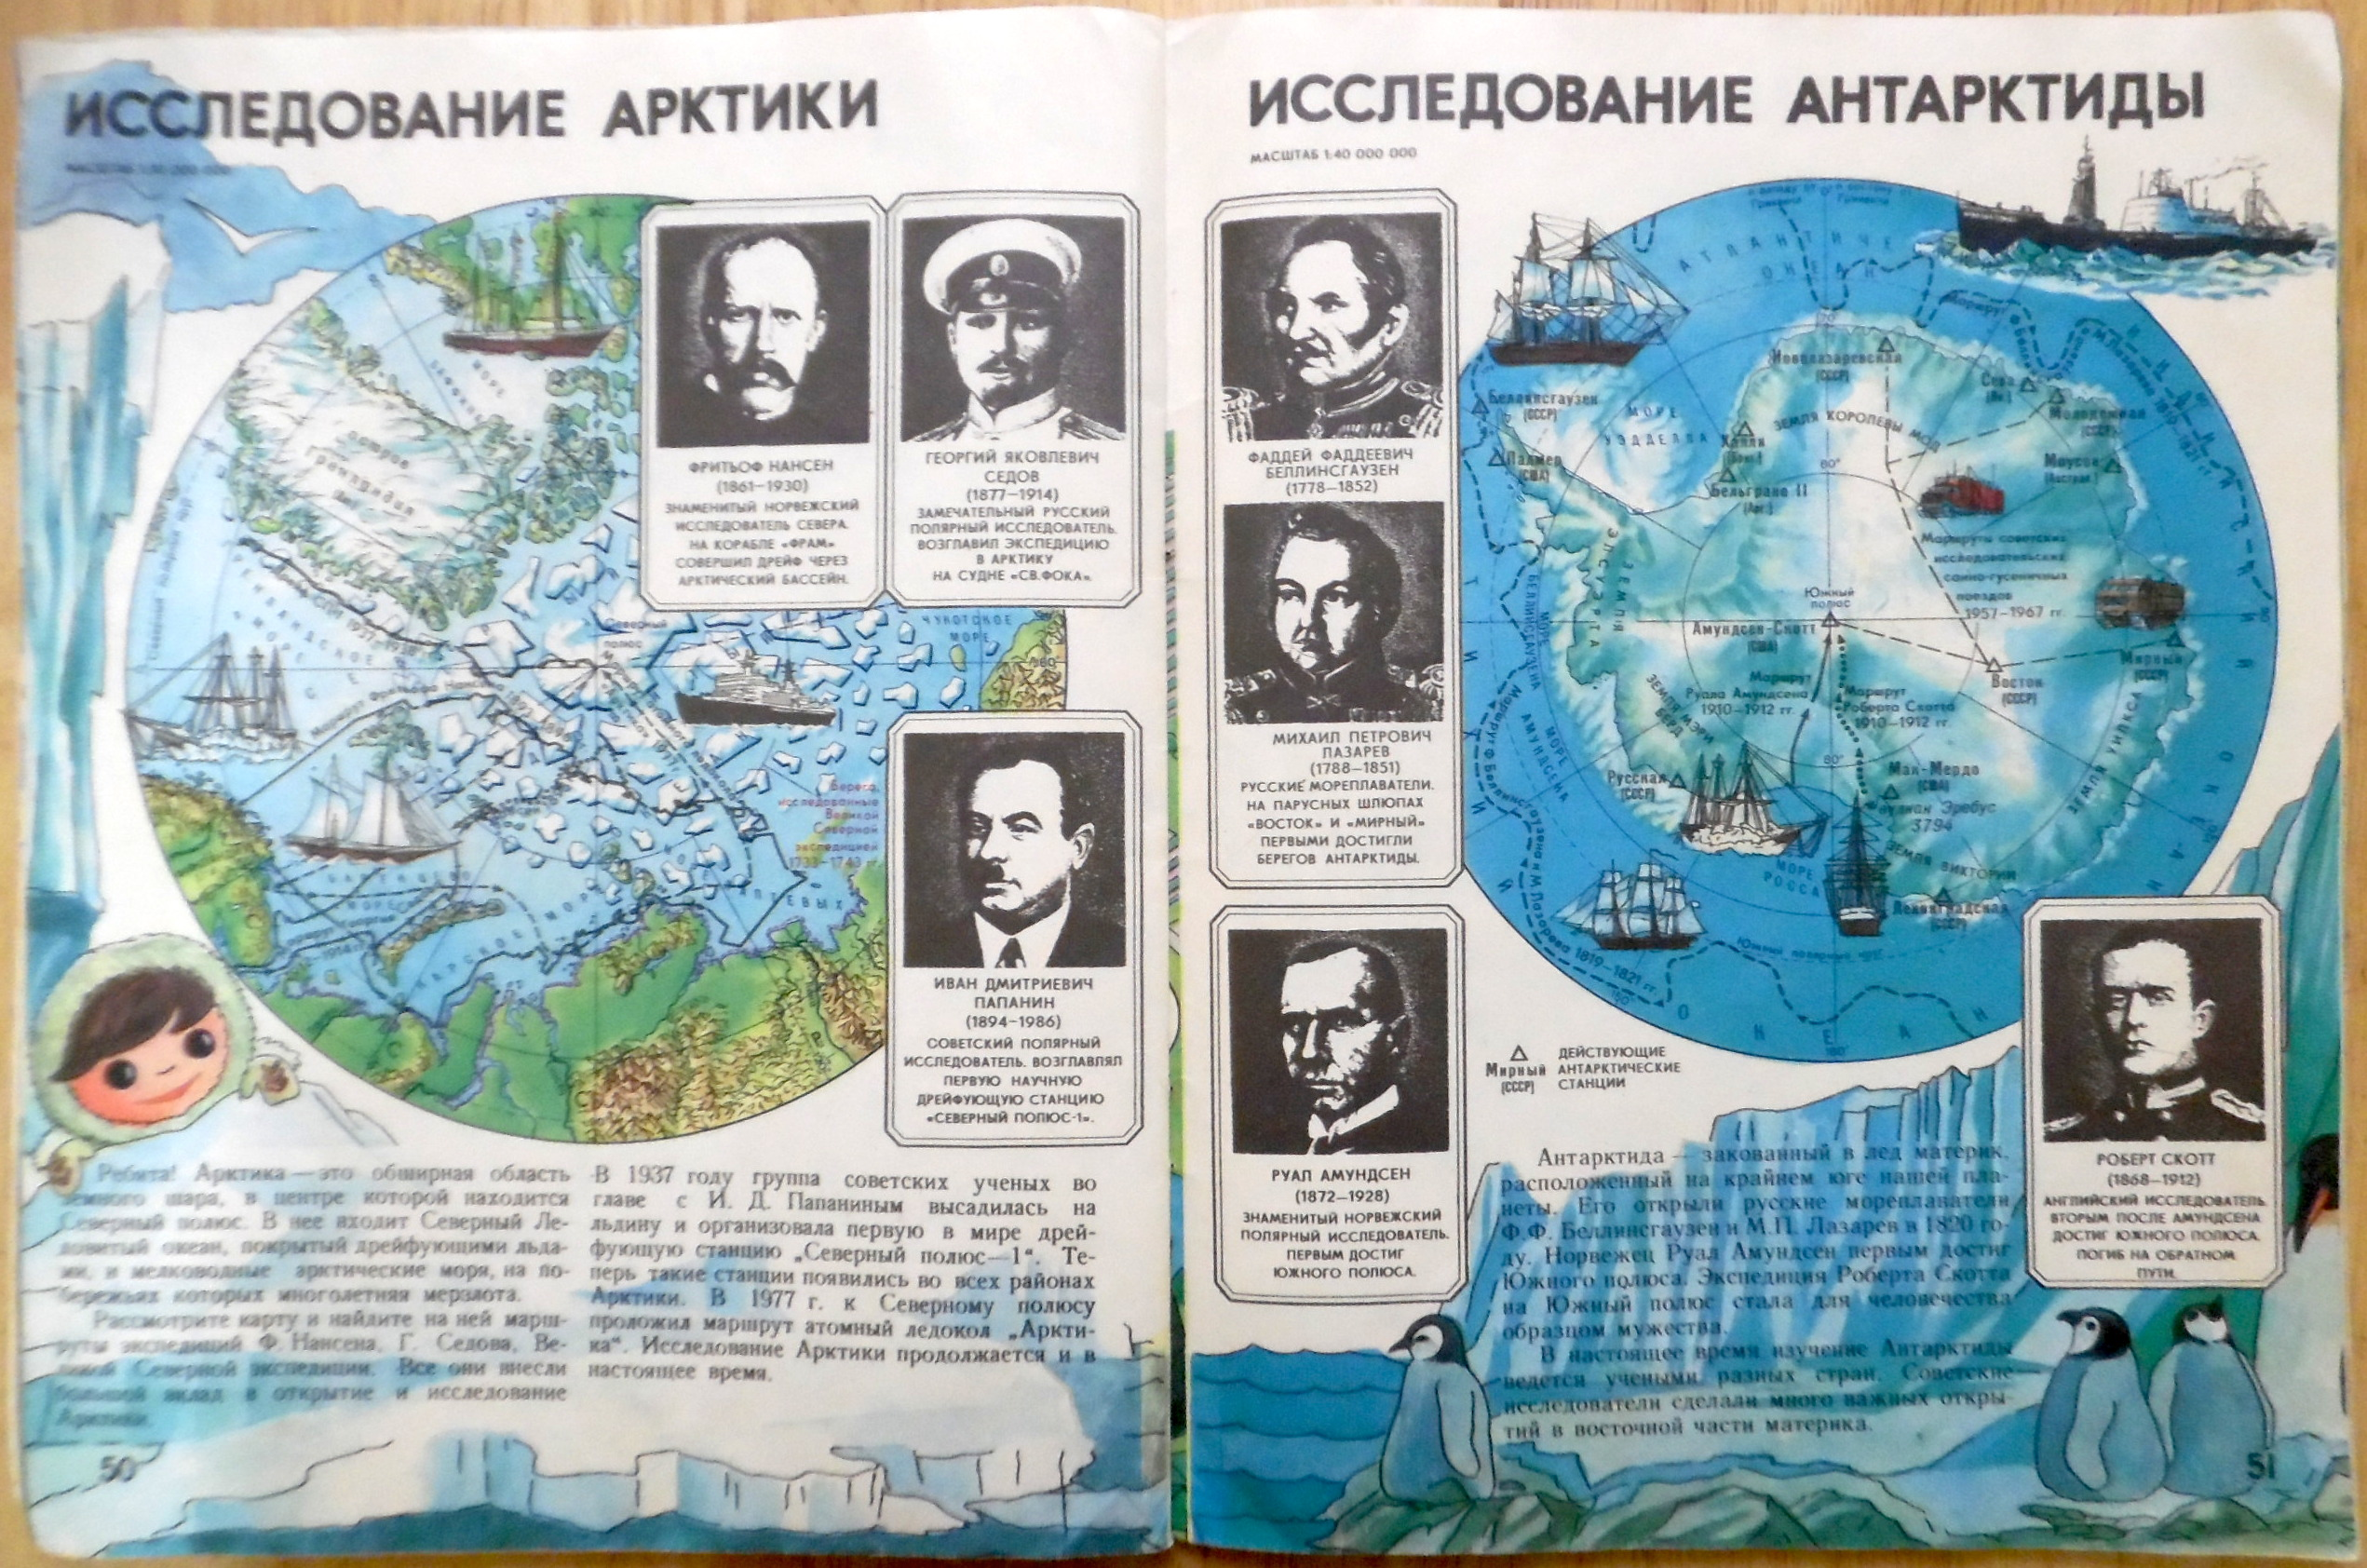 Exploration of the Arctic / Exploration of the Antarctic